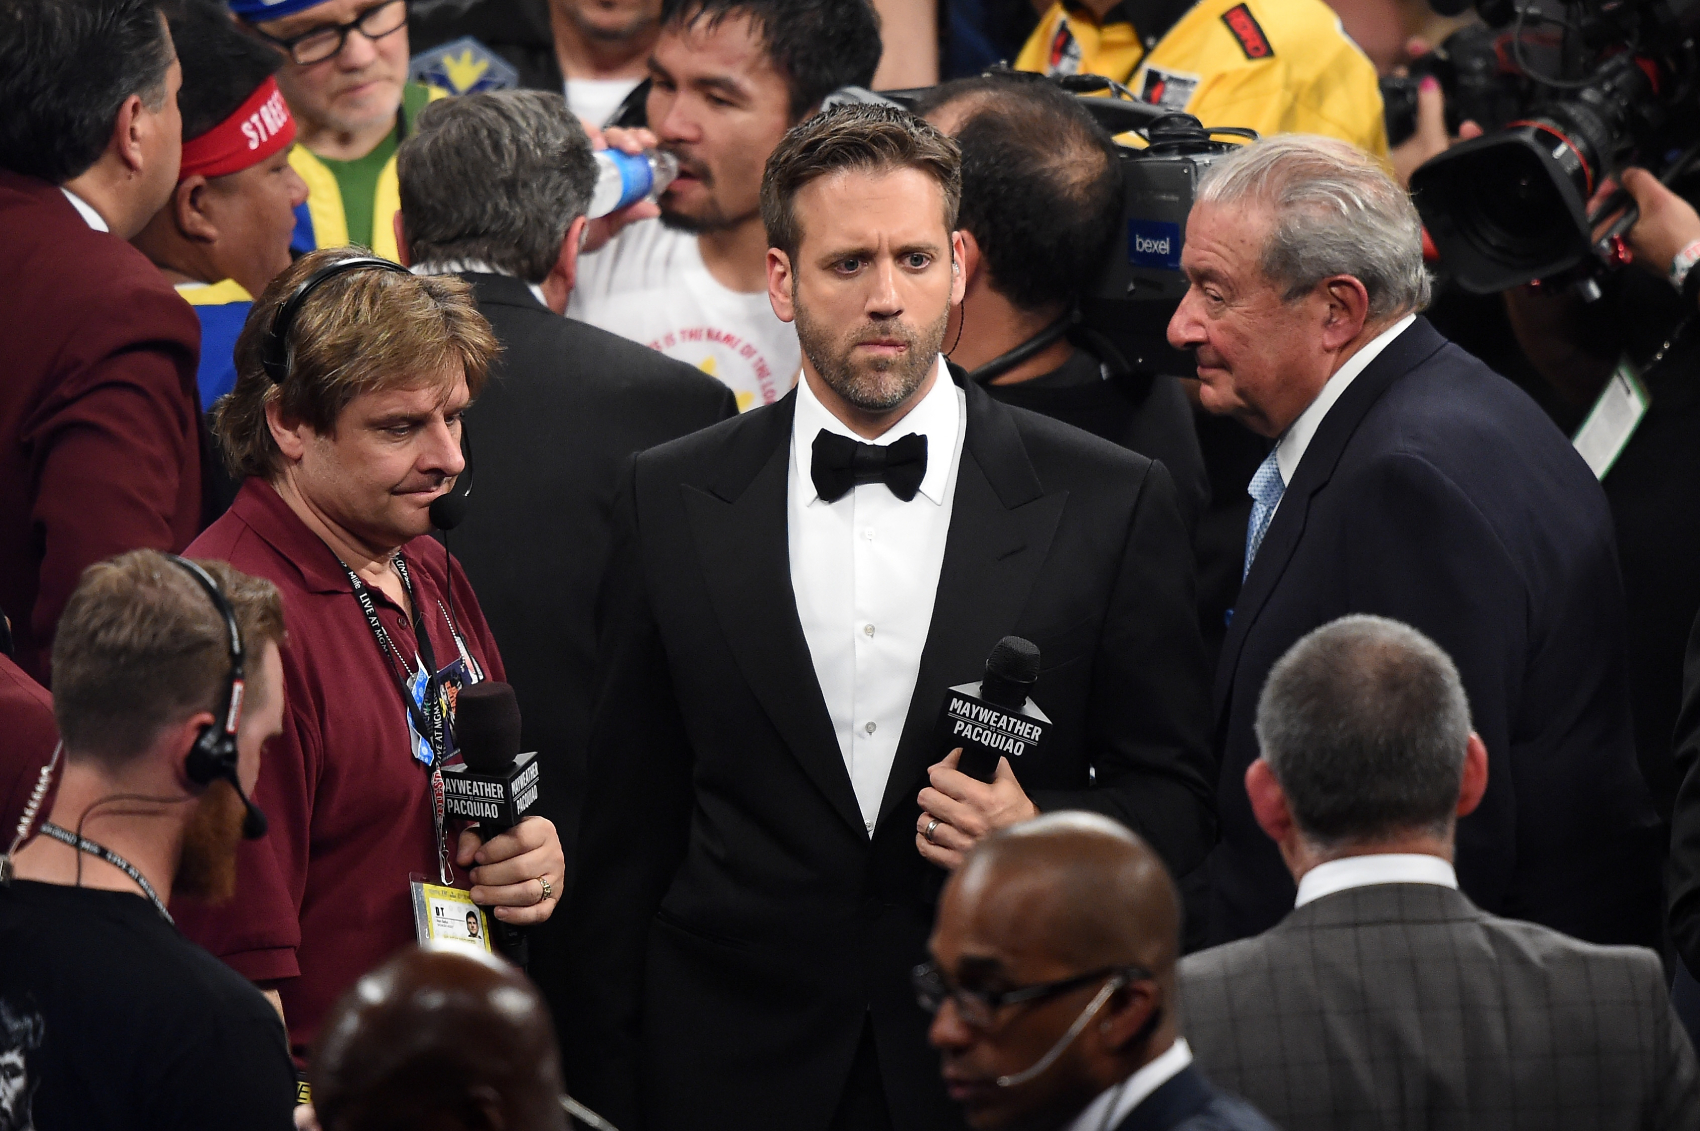 In a discussion about football games potentially not being played, ESPN's Max Kellerman just ticked off a bunch of Donald Trump supporters.